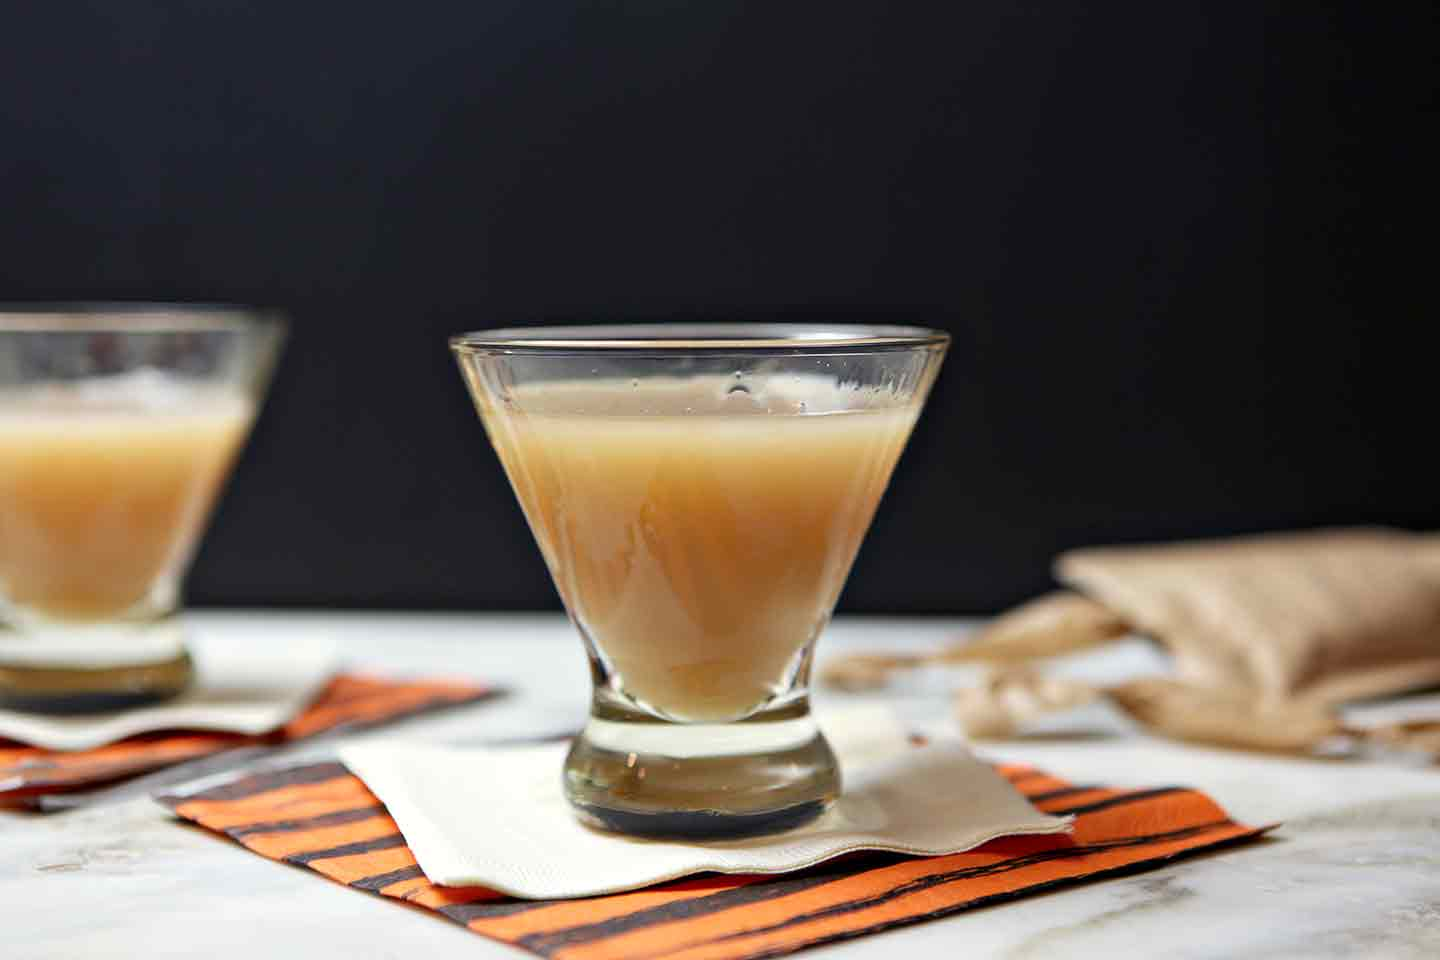 Looking for the perfect autumnal cocktail? Try a Salted Caramel Appletini, made with homemade Salted Caramel-Infused Vodka. First, you'll make the Salted Caramel-Infused Vodka. The caramels dissolve into the vodka after about 24 hours. Once you've prepared the infused vodka, it's time to make the Appletini! Measure the infused vodka, apple cider and caramel sauce into a cocktail shaker, then mix vigorously. Enjoy this cocktail on a cool fall evening!